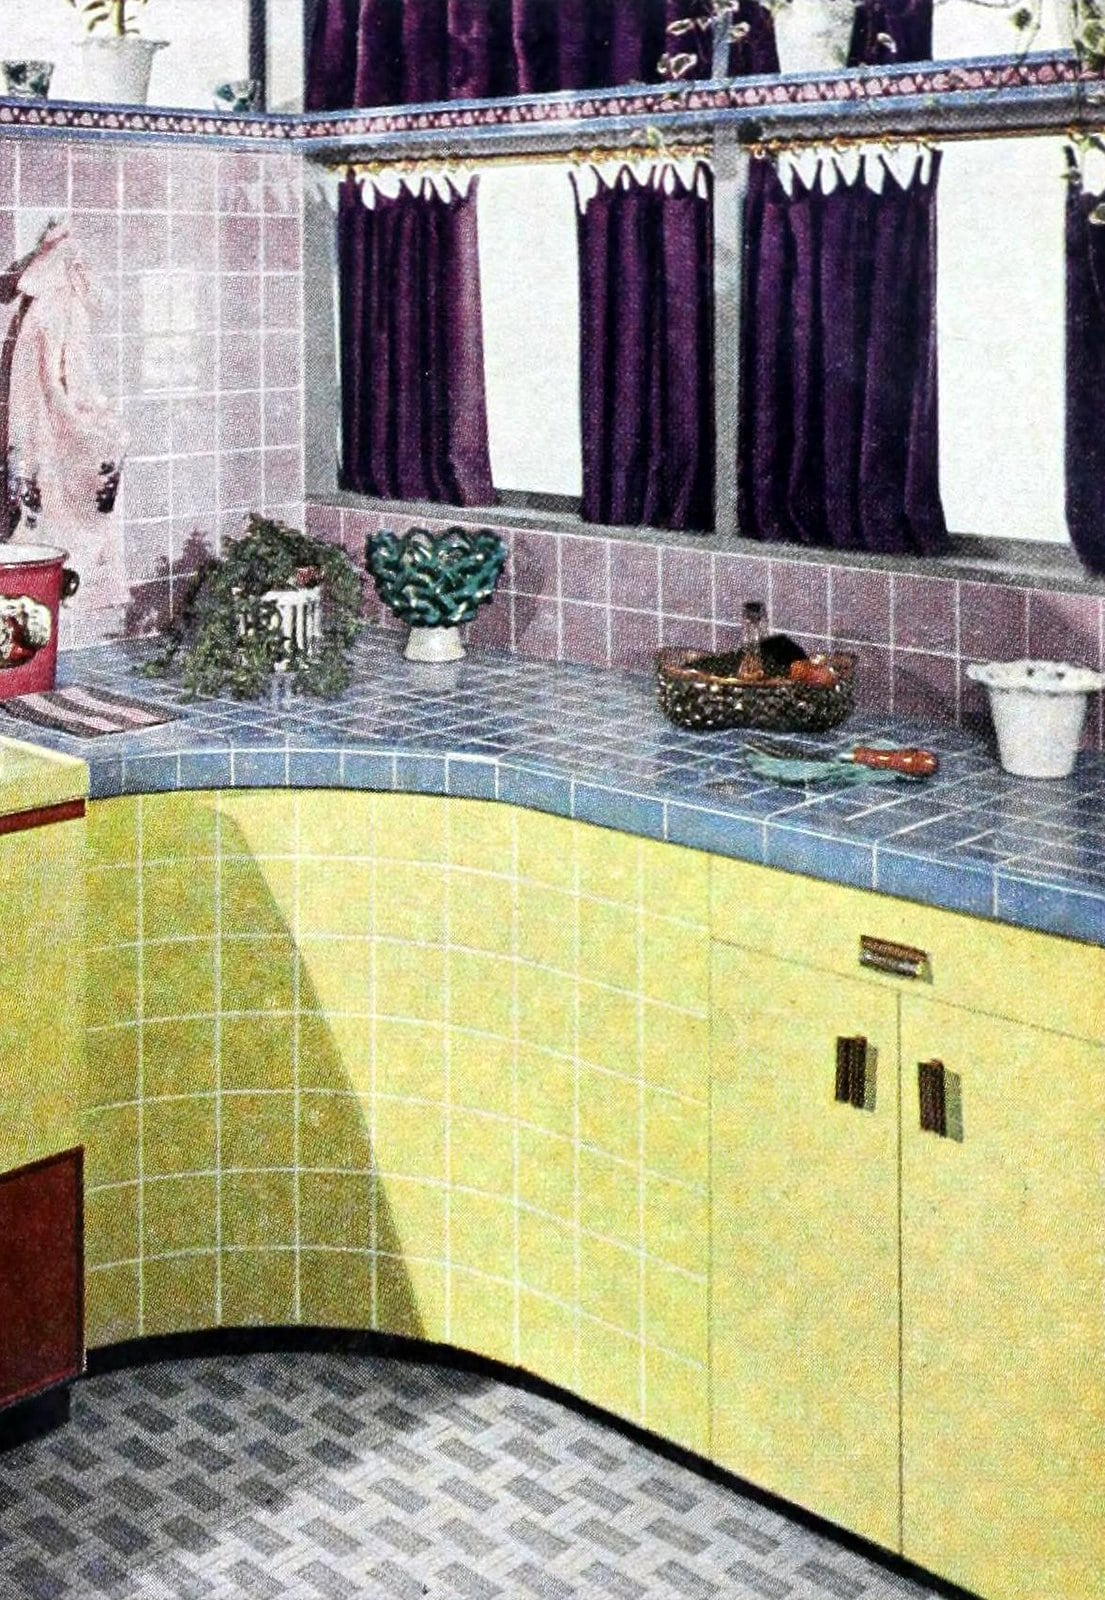 Vintage tile countertops and walls from the 1950s